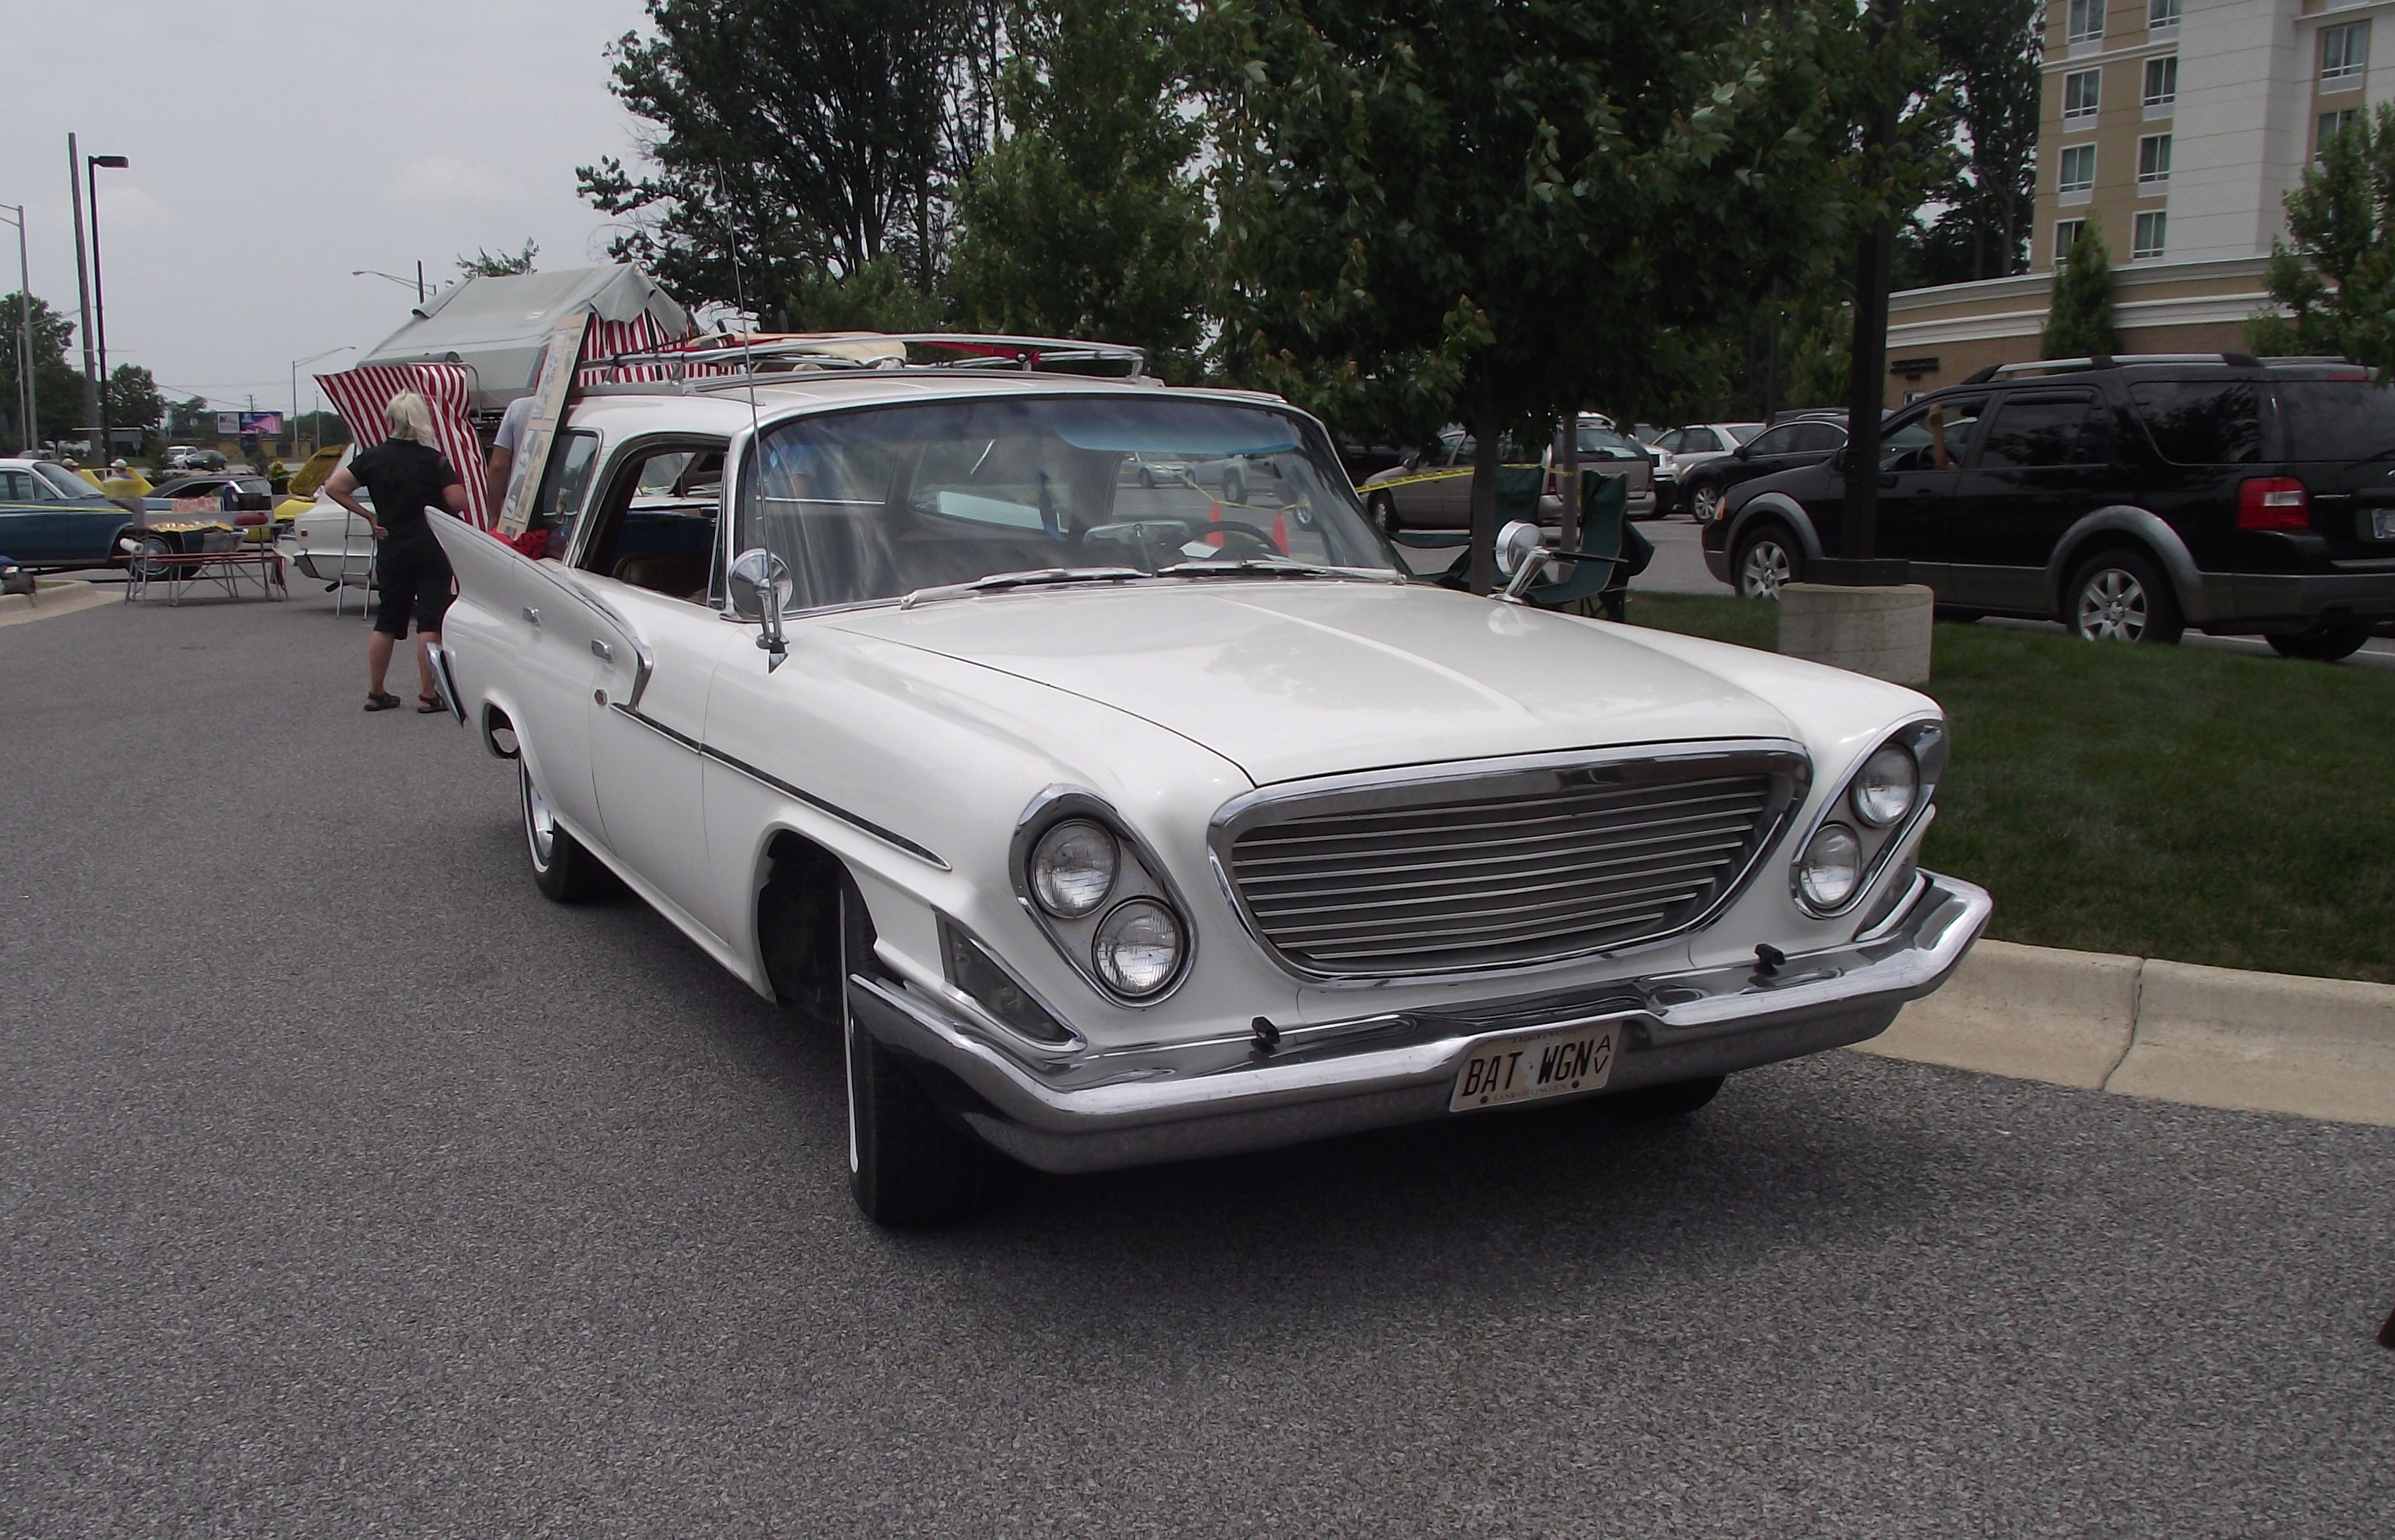 Vintage station wagons on display in Fletcher June 25